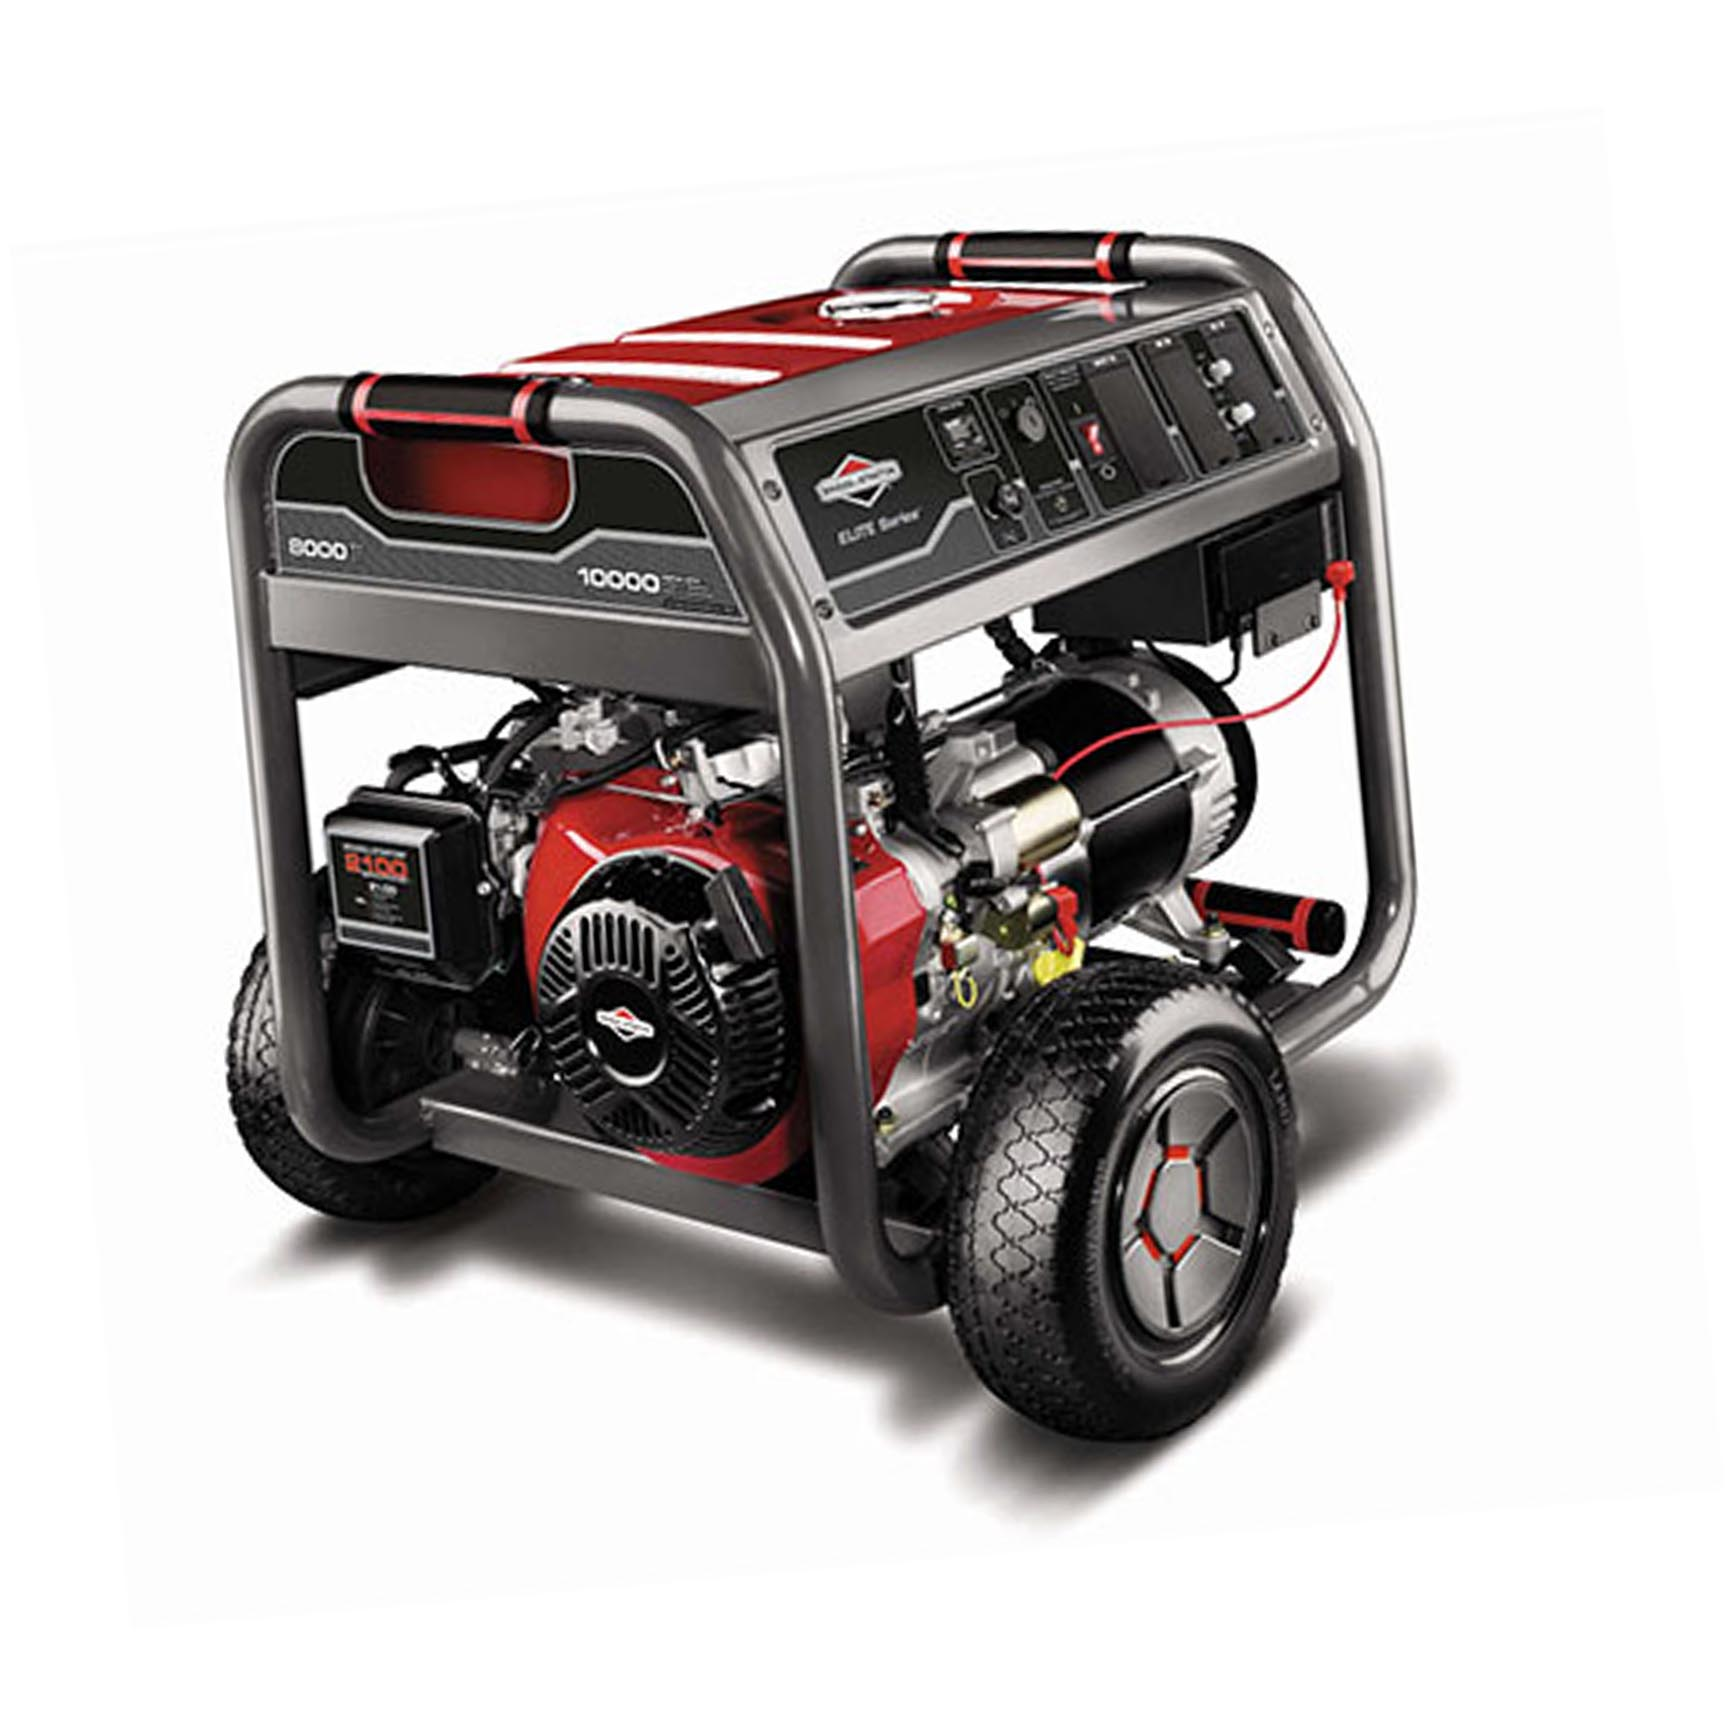 Briggs & Stratton 30664 8000W Running & 10,000W Starting Portable Gas Generator